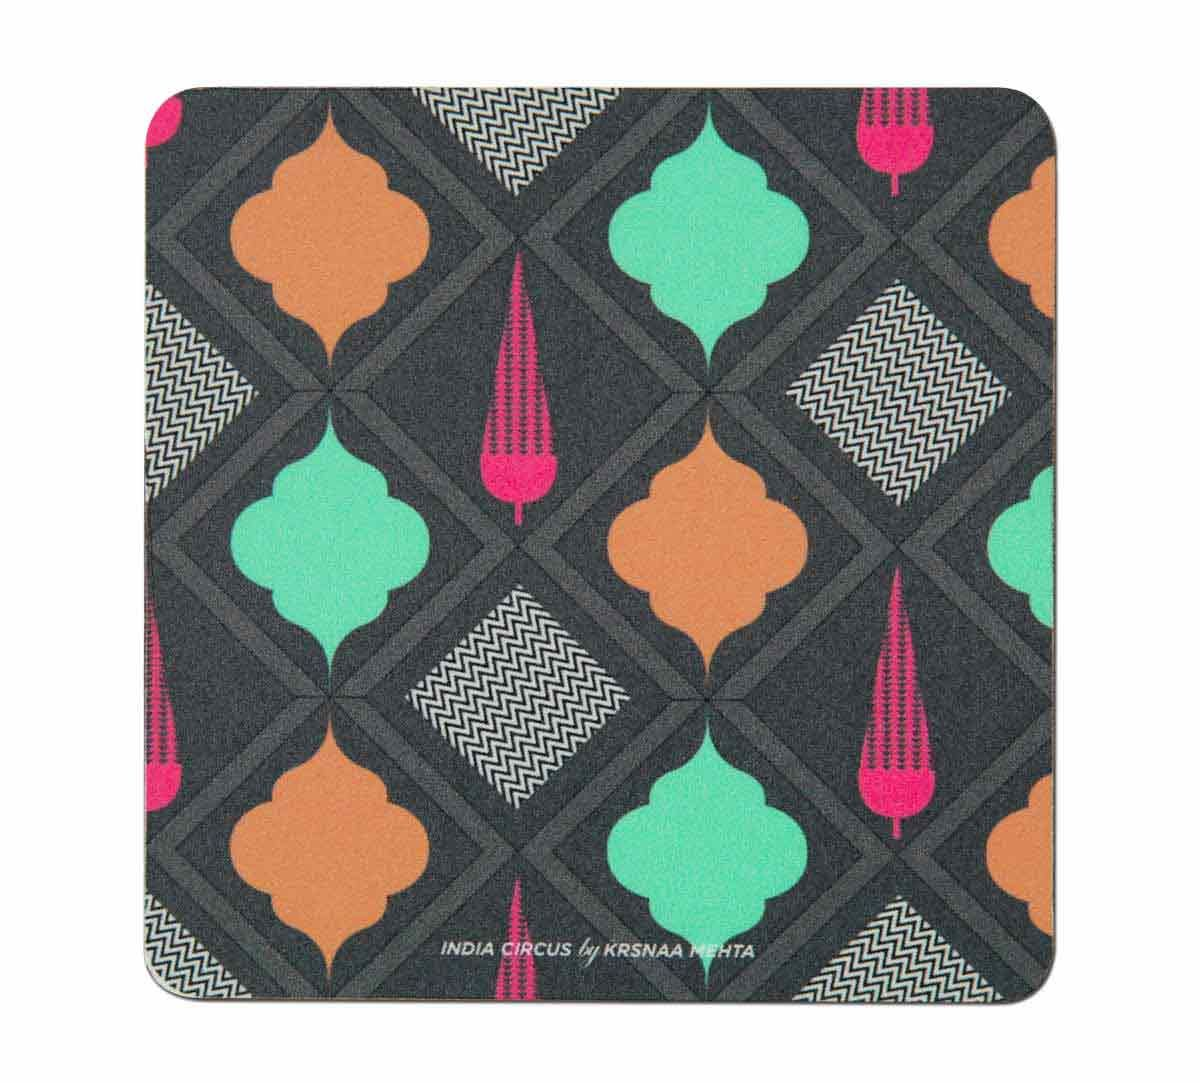 India Circus Assorted Geometry Table Coaster Set of 6